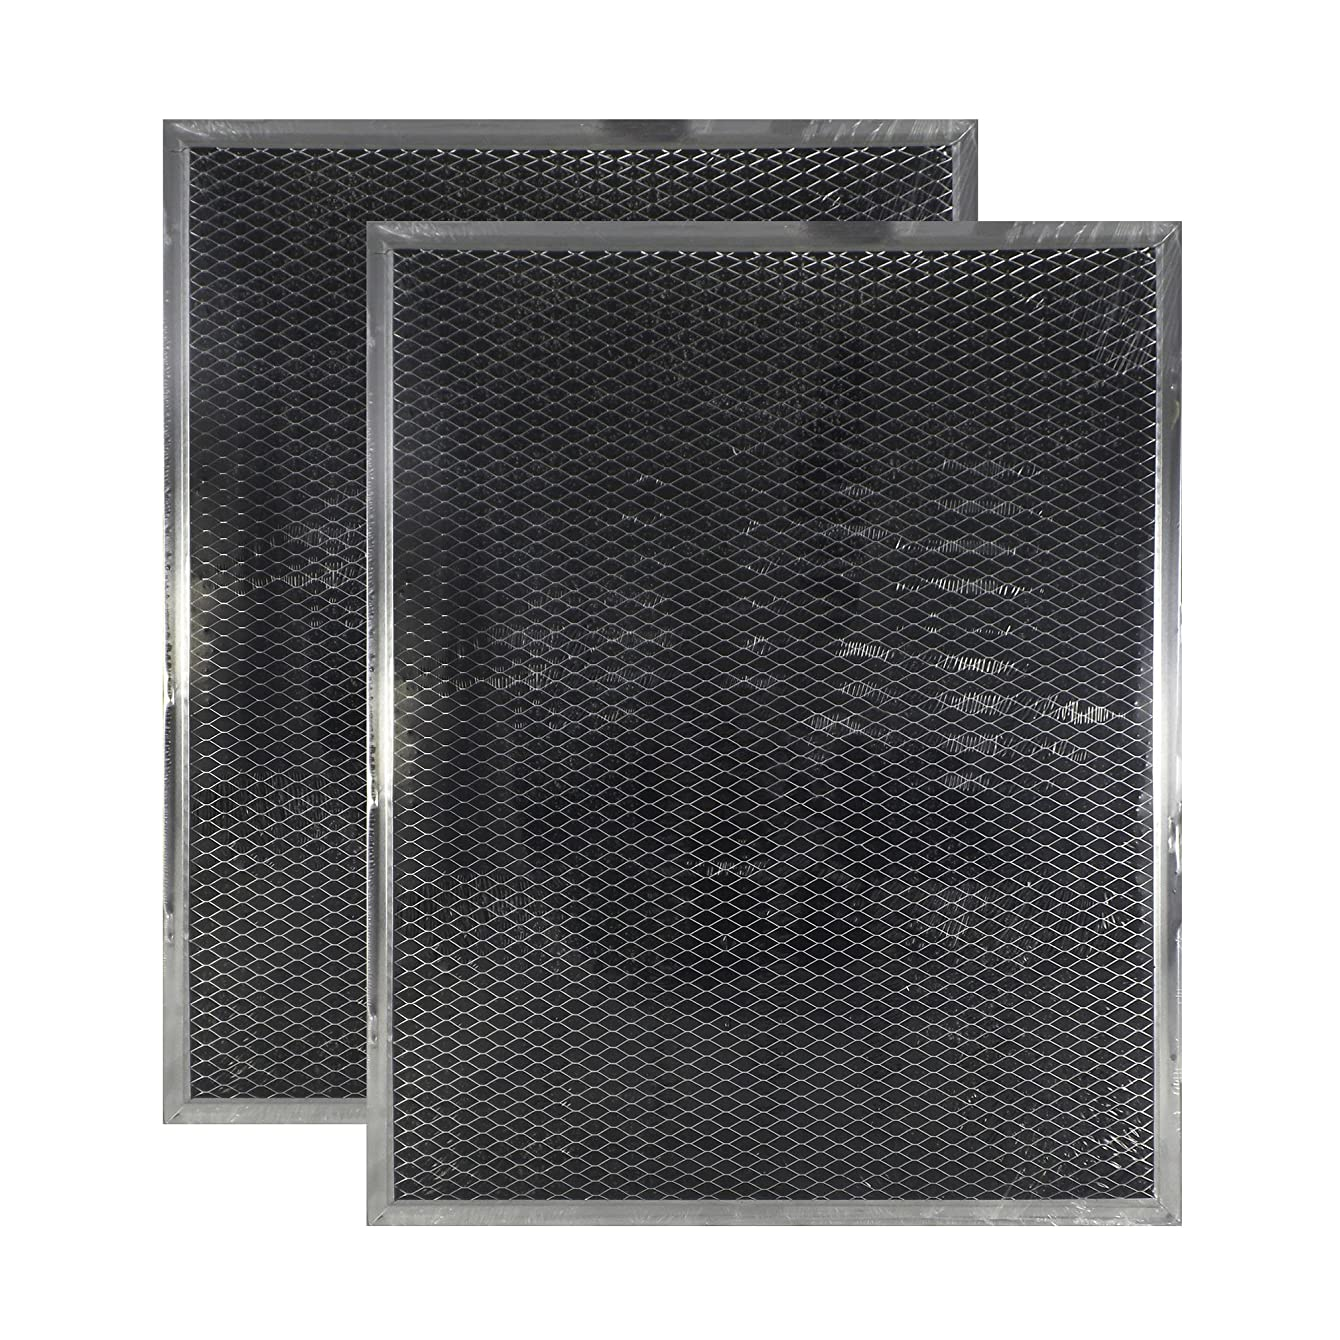 2-PACK Air Filter Factory Compatible Replacement For Broan BPSF30 99010308 QS WS NON-Ducted Measures 10.82